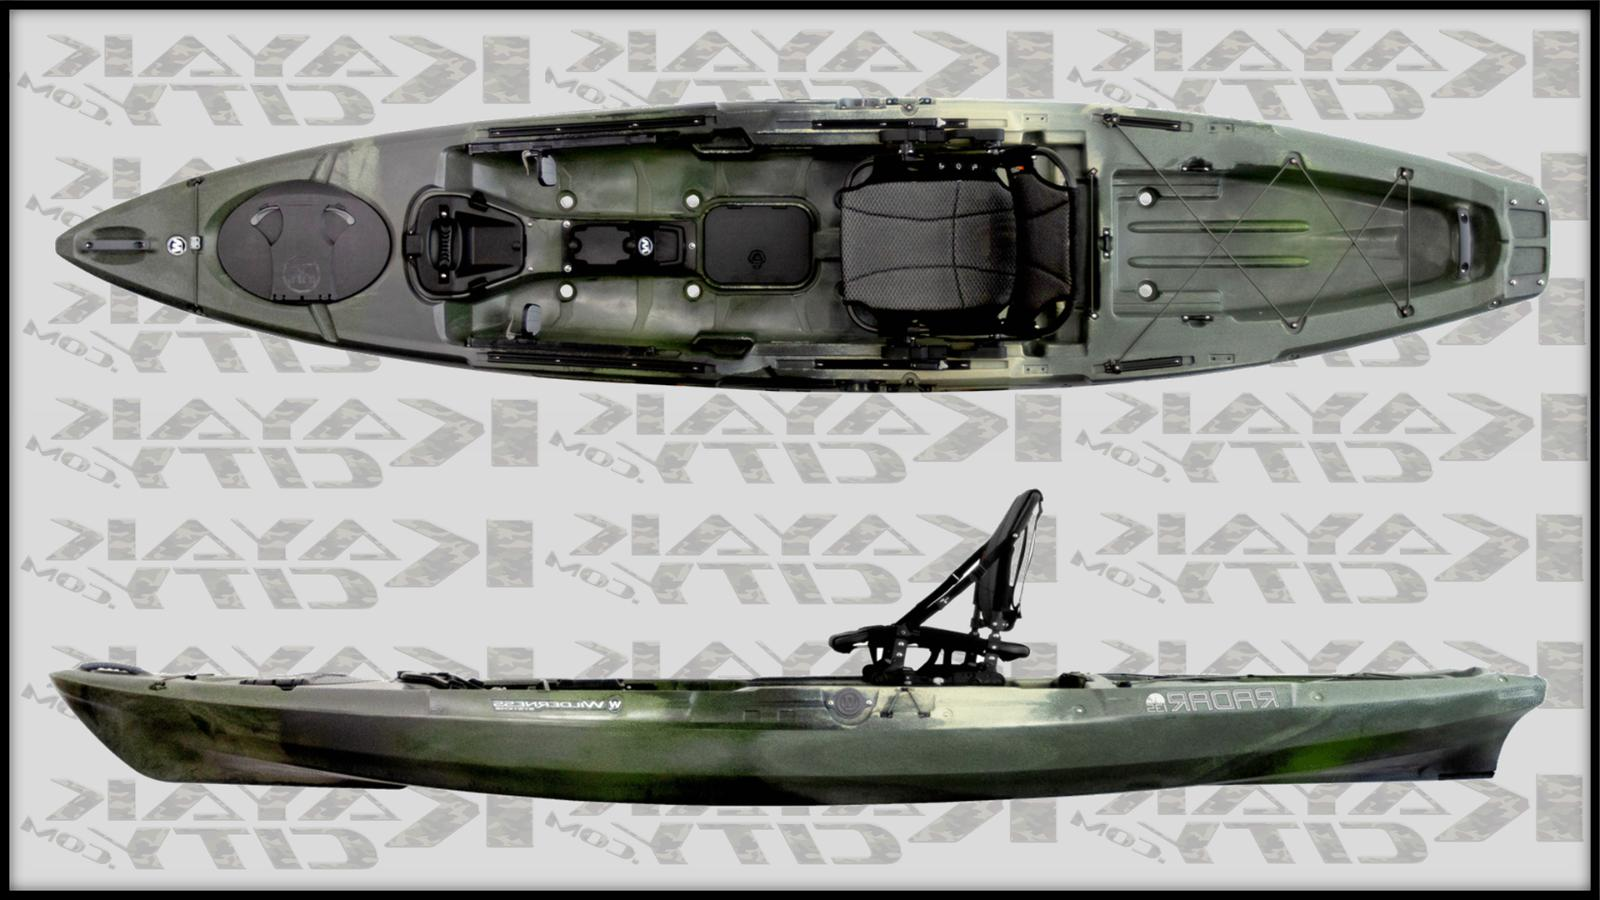 2020 radar 135 fishing kayak mesa camo